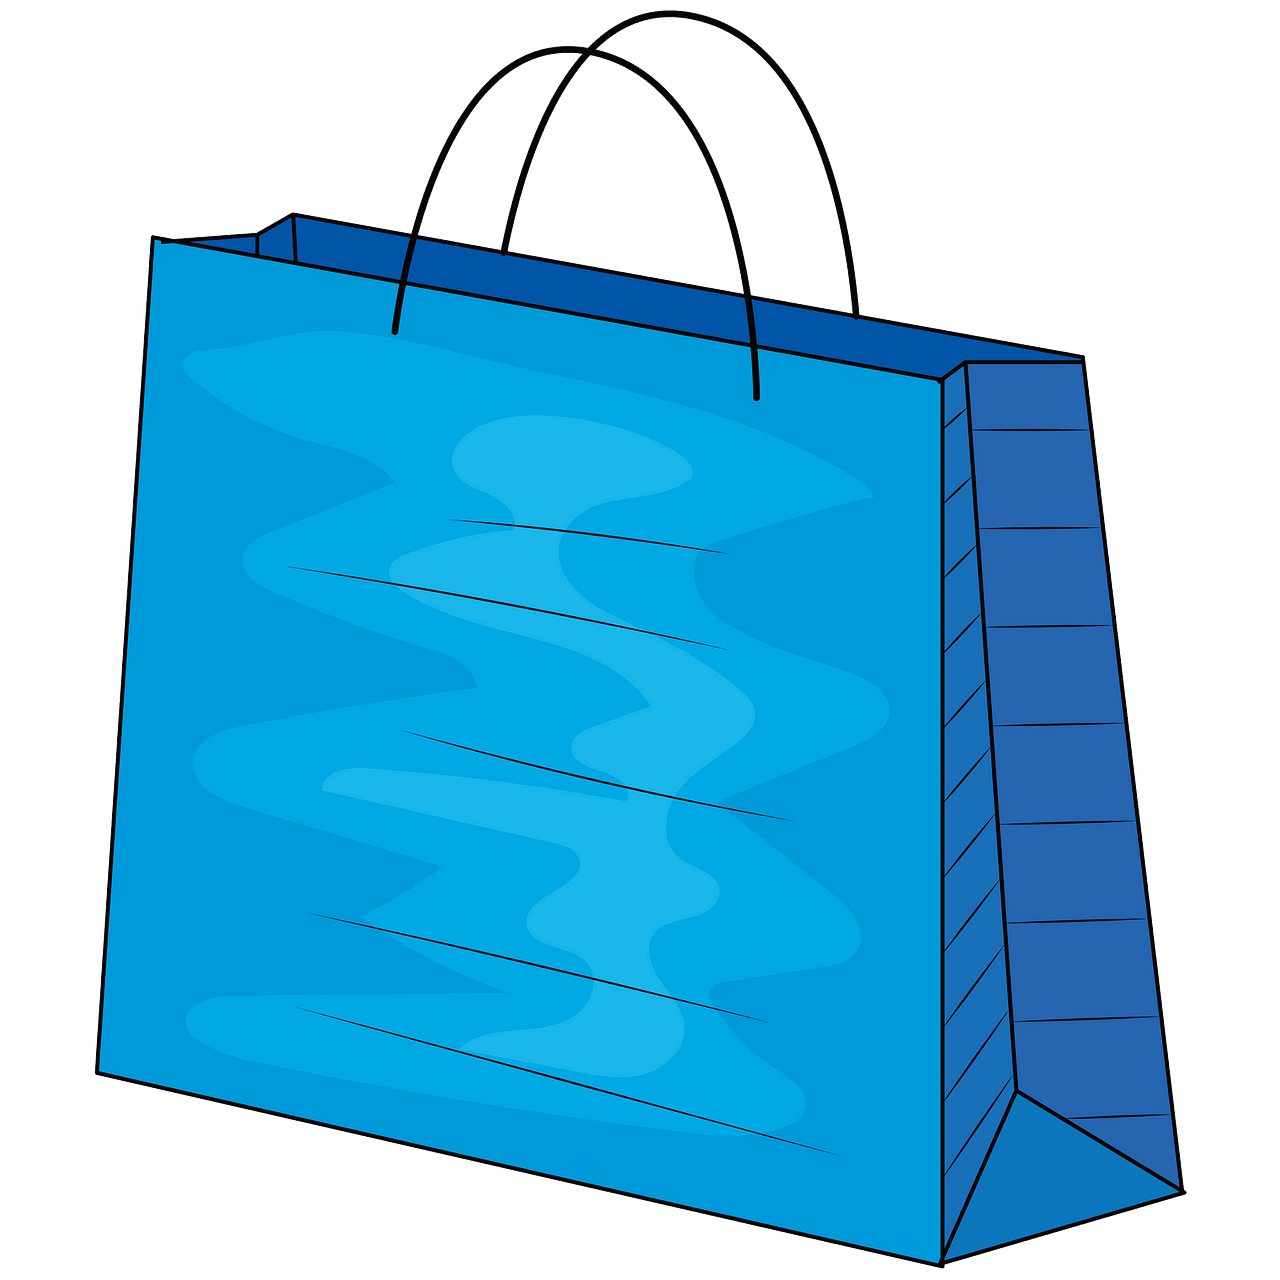 Blue shopping bag clipart. Free download..